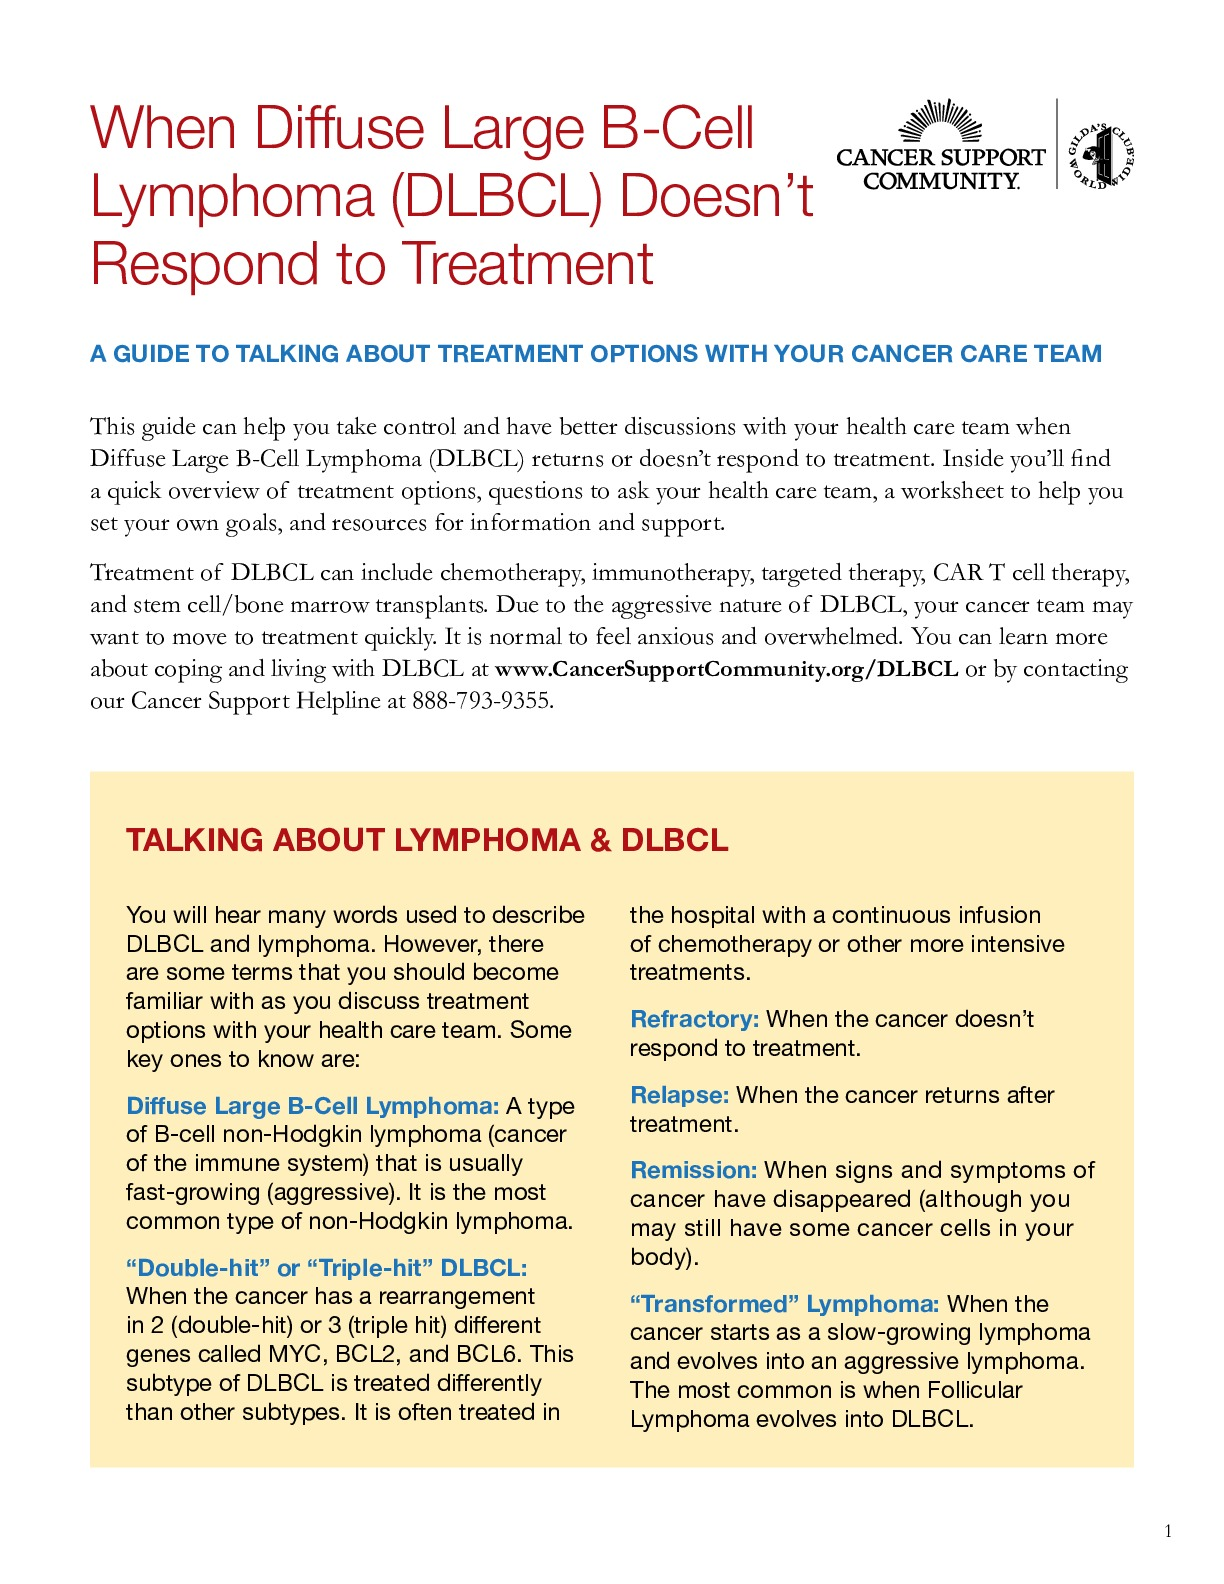 Preparing for Your Doctor's Visit: A Worksheet for Relapsed/Refractory DLBCL